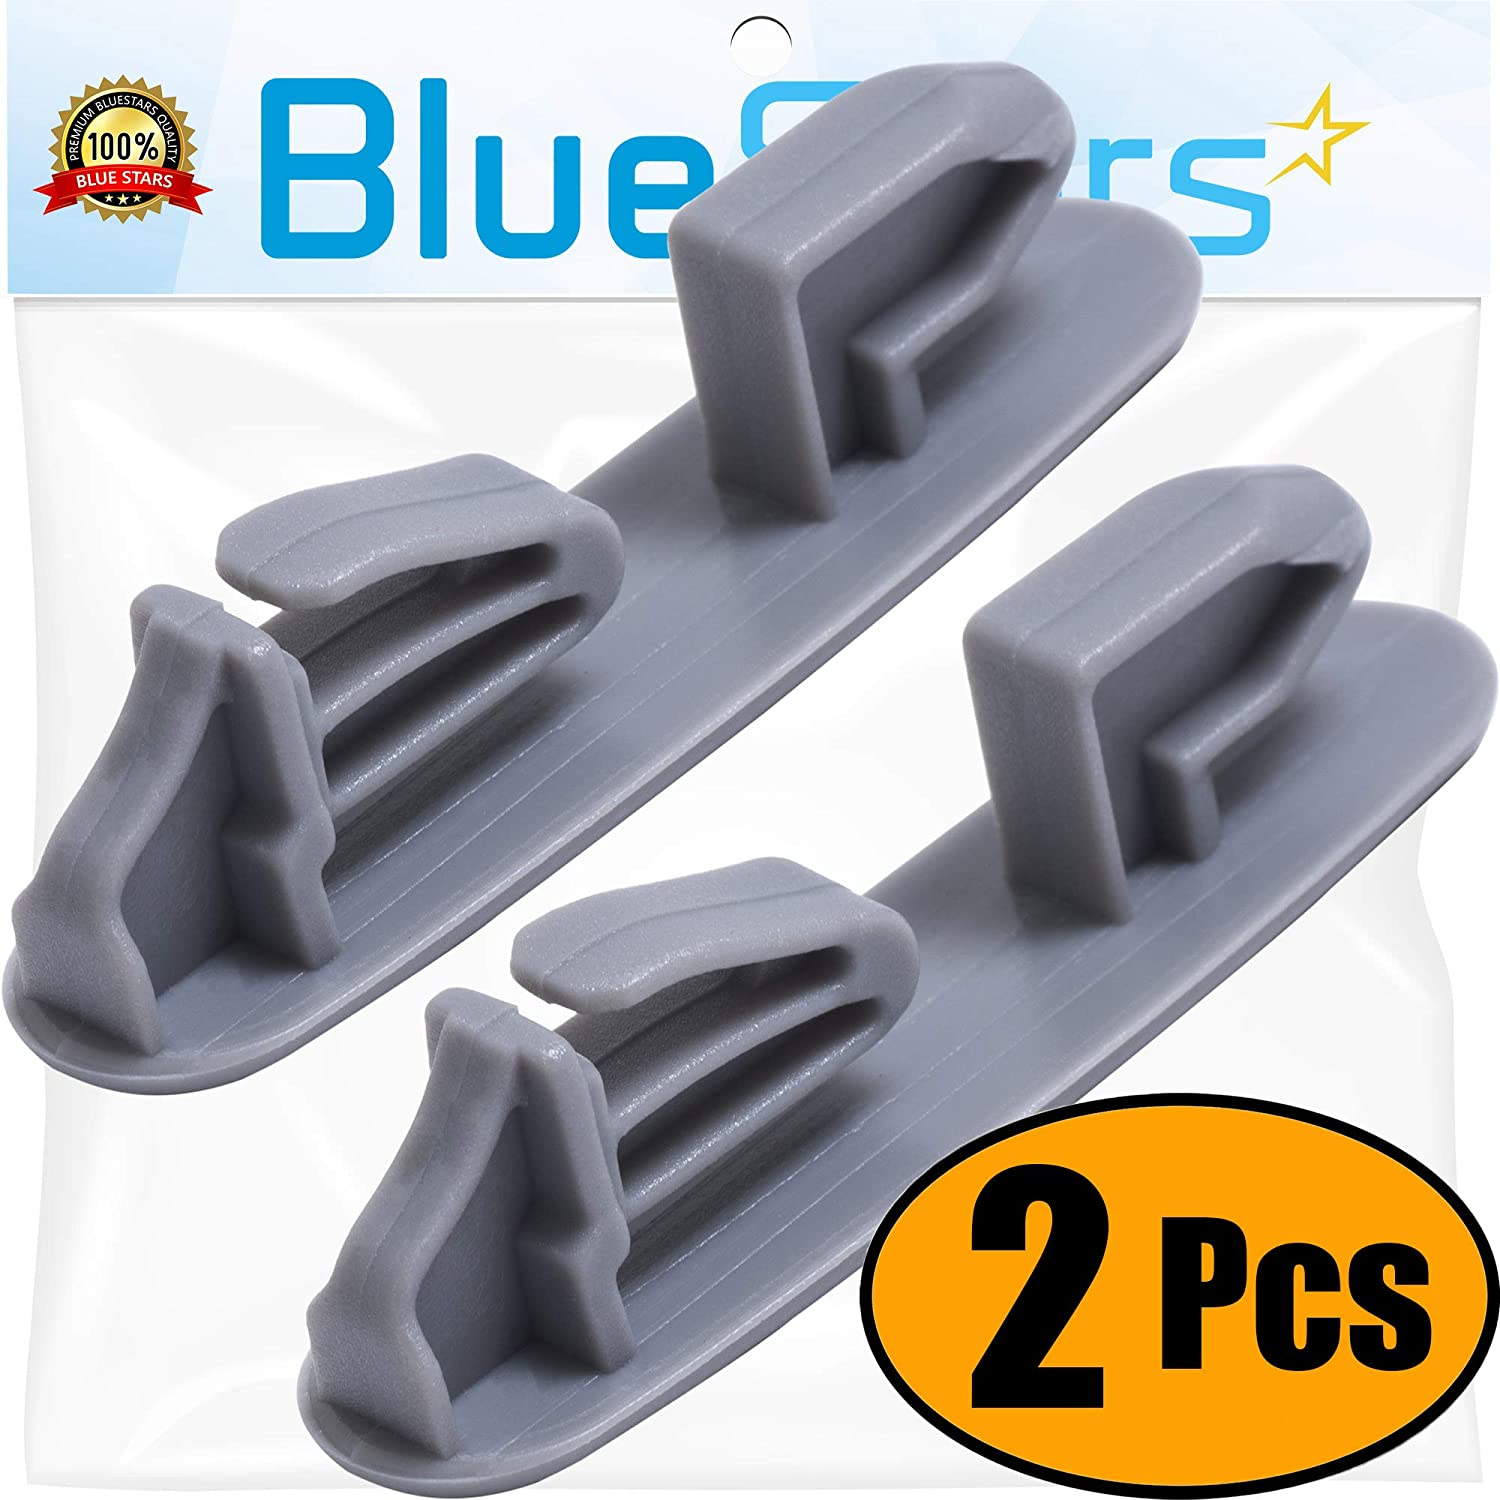 Ultra Durable 8565925 Dish Rack Stop Clip Replacement Part by Blue Stars – Exact Fit For Whirlpool & Kenmore Dishwashers - Replaces WP8565925 8524581 8270105 - PACK OF 2